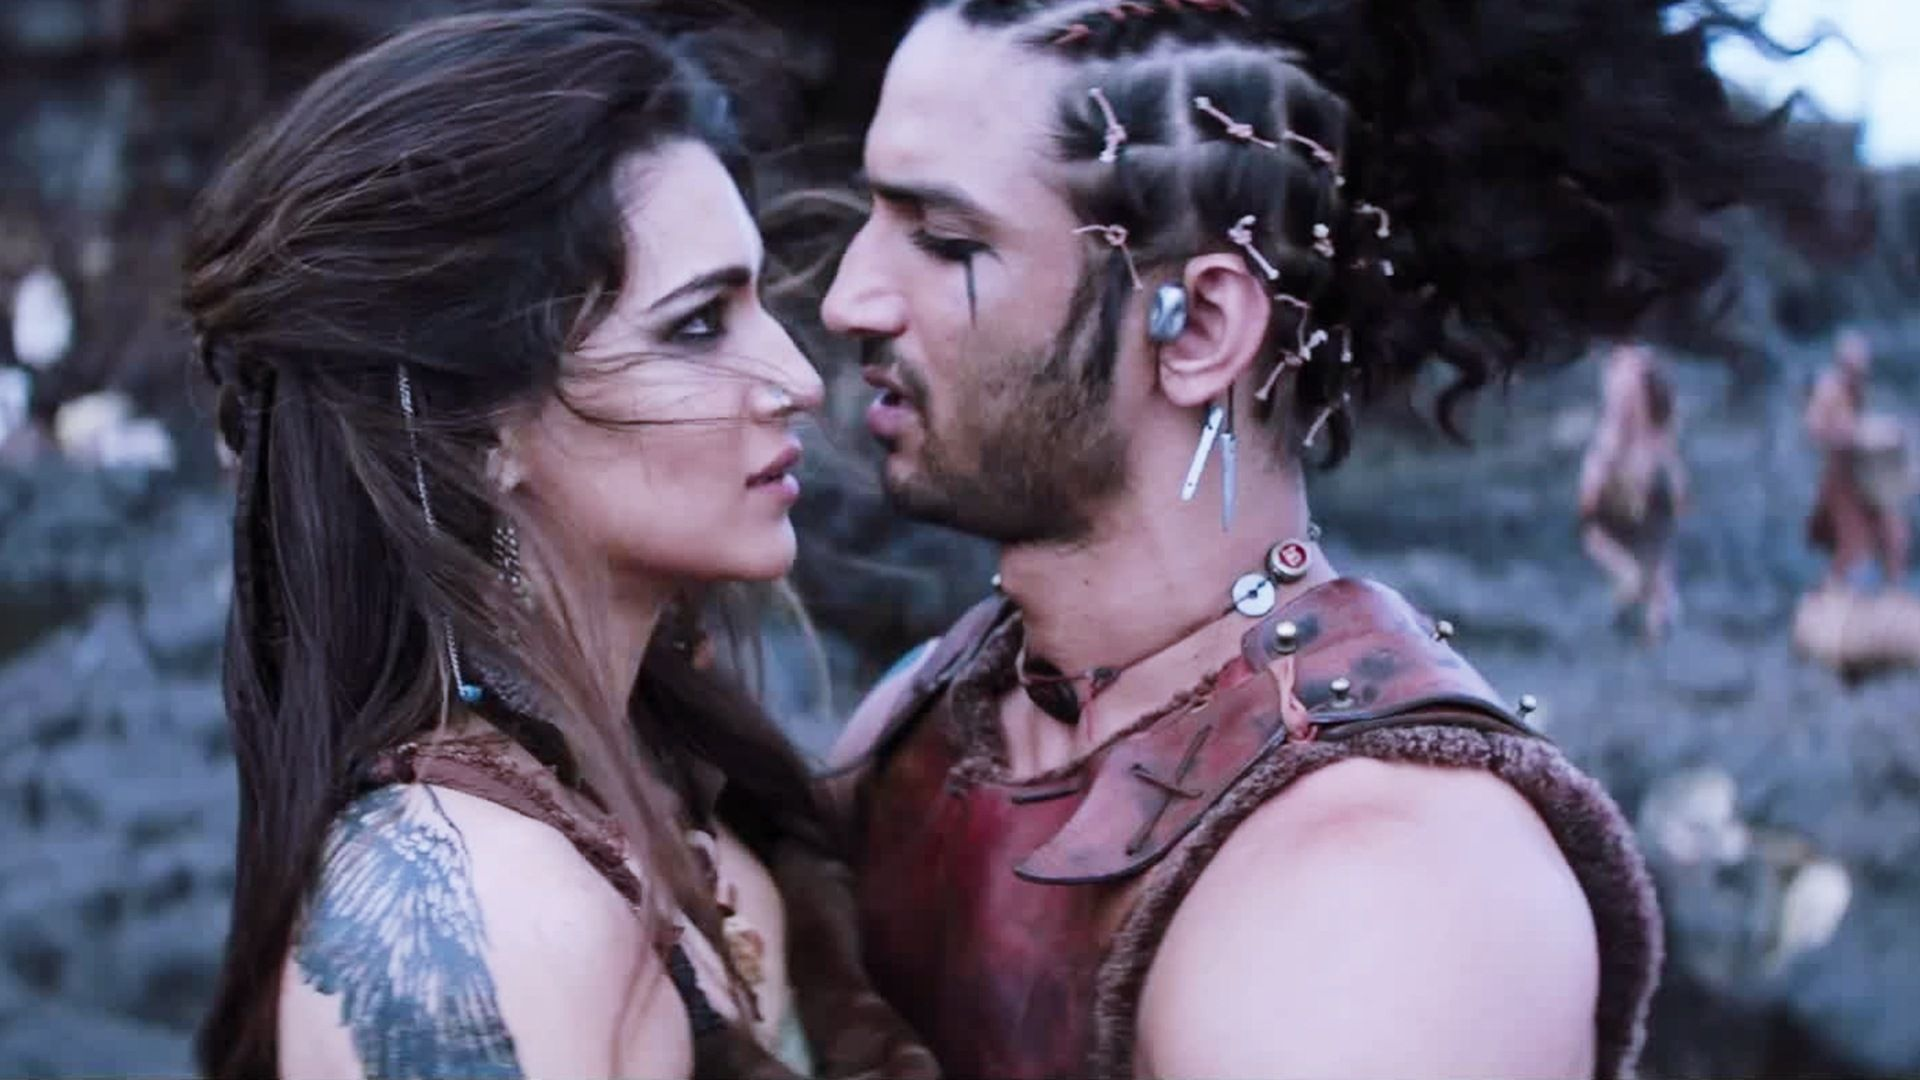 Sushant Singh Rajput And Kriti Sanon Raabta Wallpapers 17153